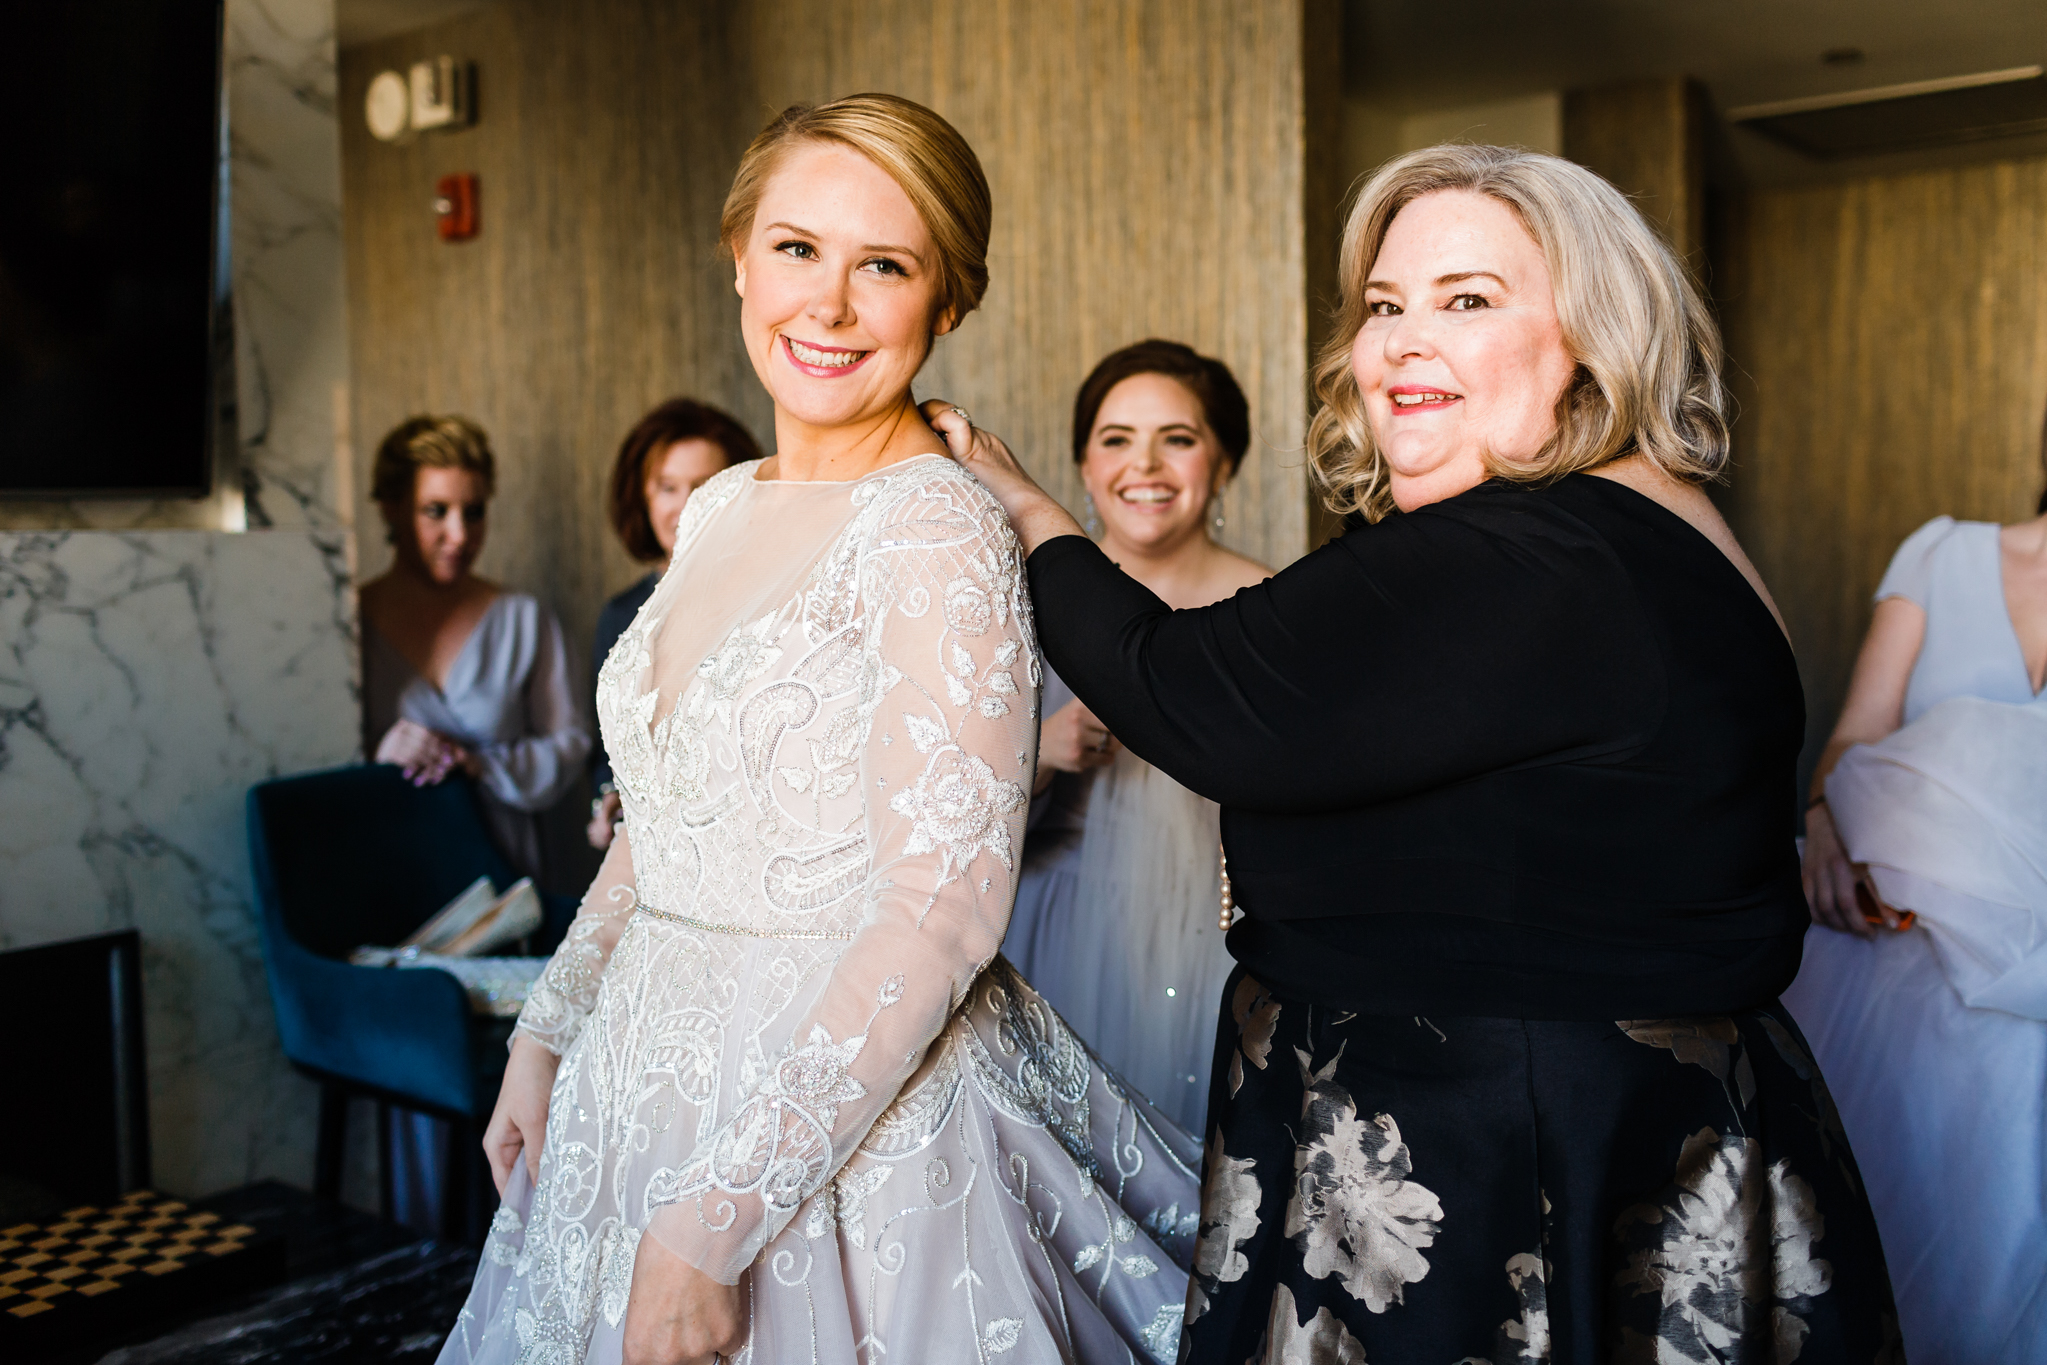 Mother and daughter share a moment on wedding day